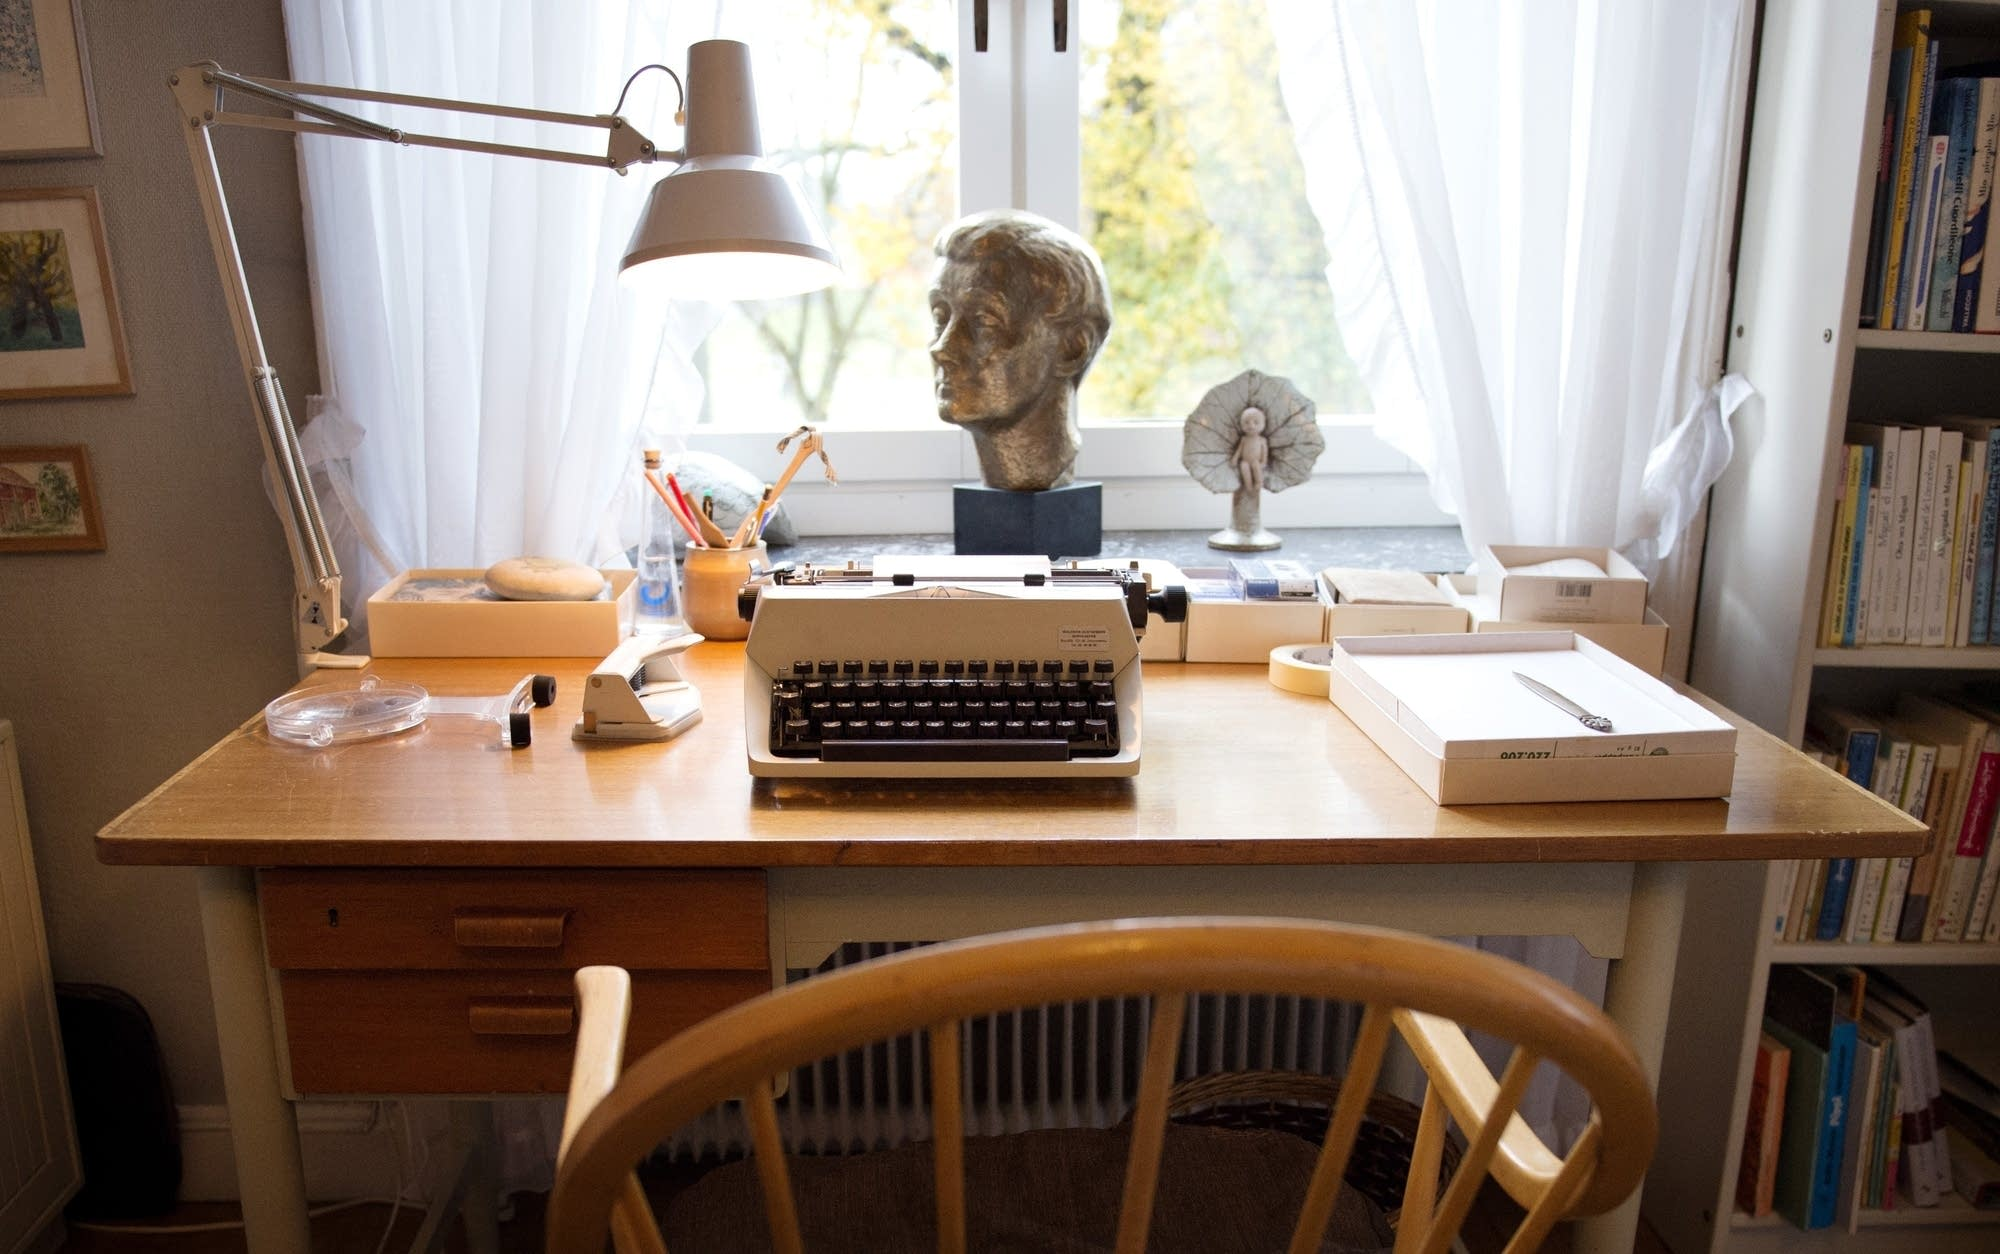 Astrid Lindgren's desk and typewriter